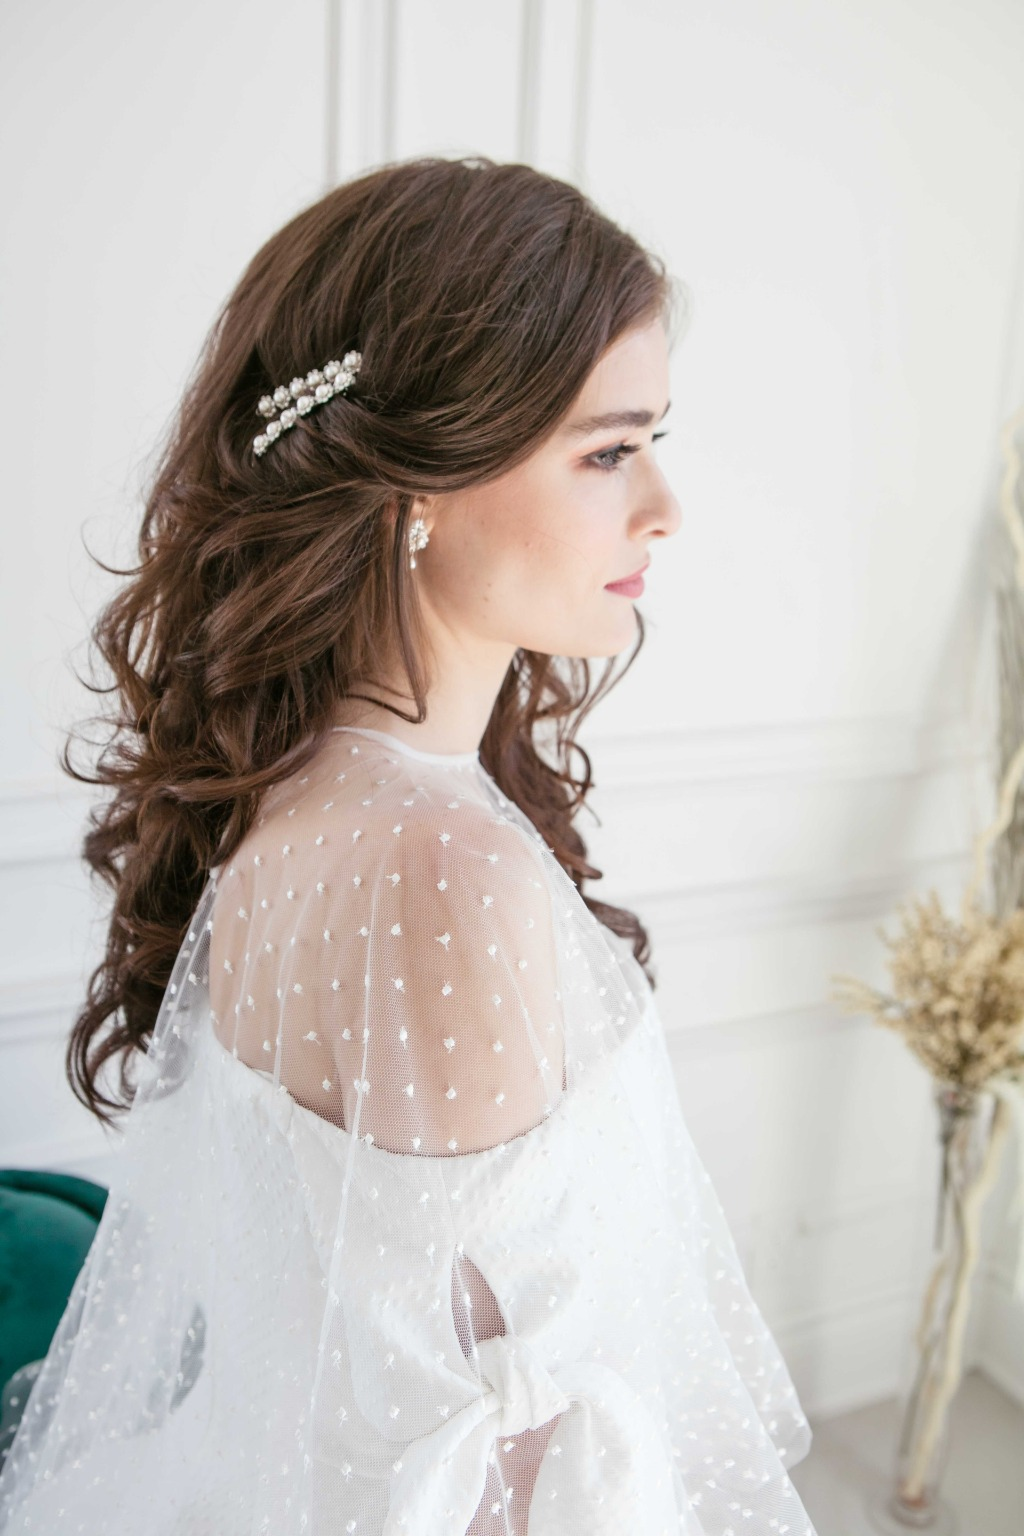 Wedding hairstyle inspiration with Laura Jayne's 2020 hair accessories collection. The bridal hair accessory design is modern and chic